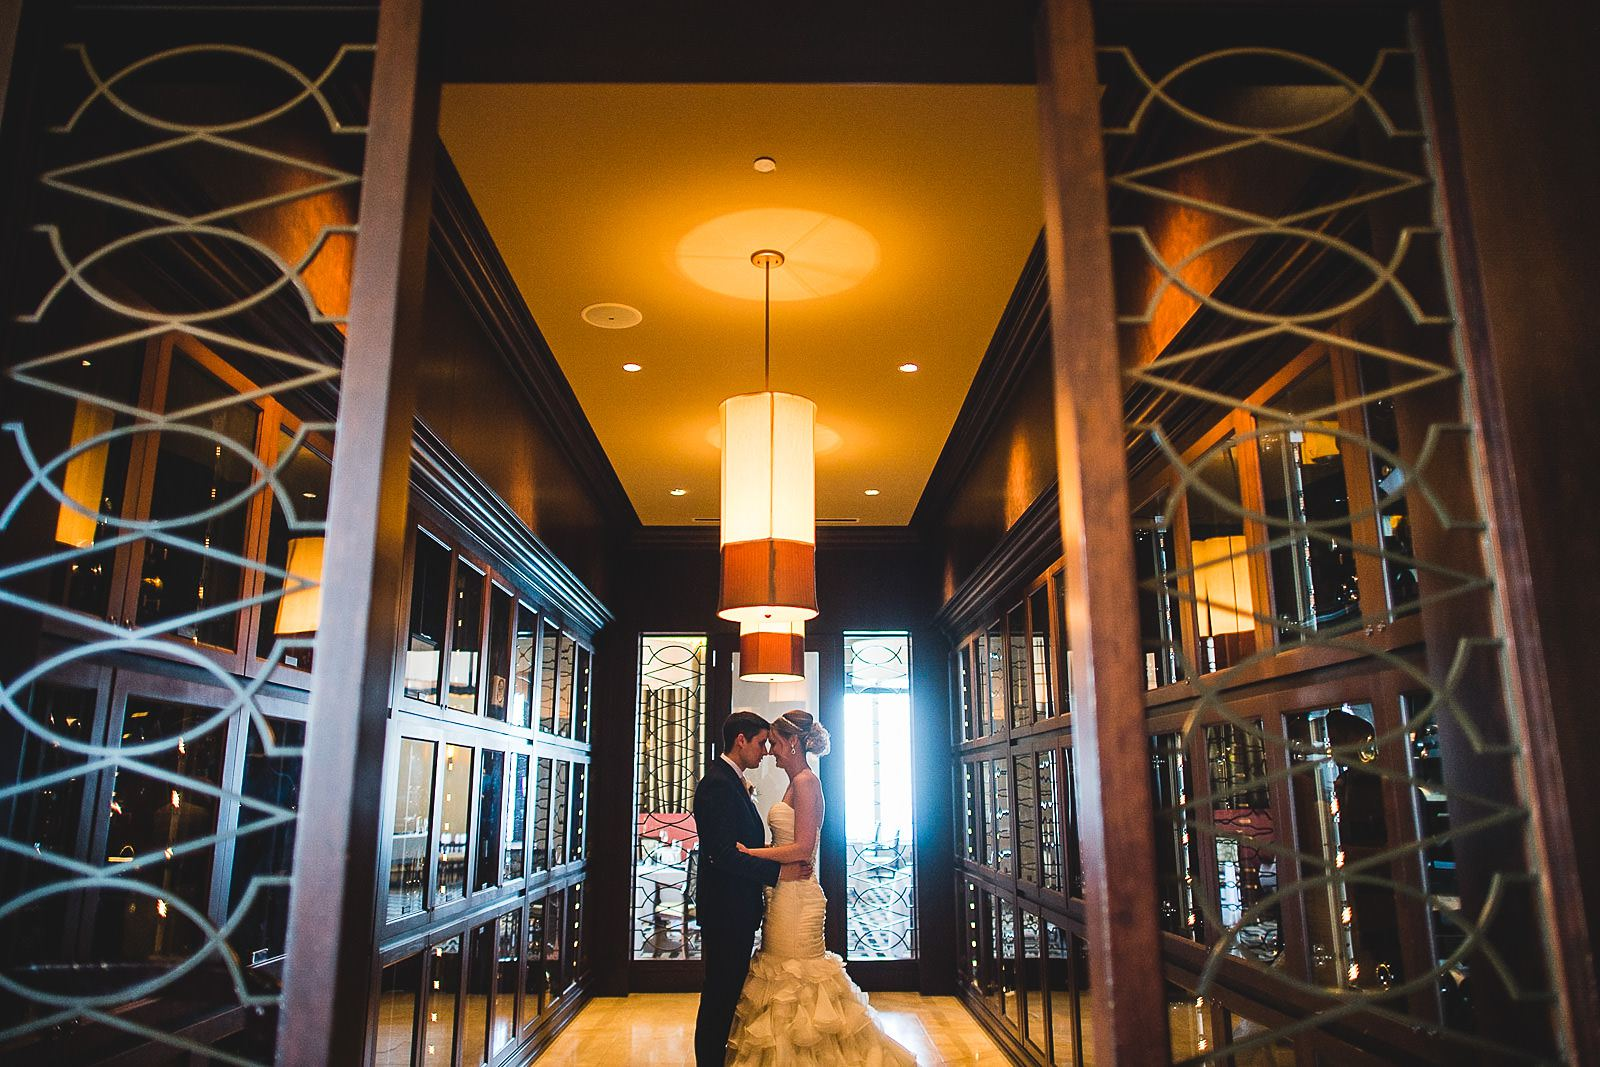 34 wedding photos at mid america wedding photos - Mid America Club Wedding Photography / Hannah + Jay